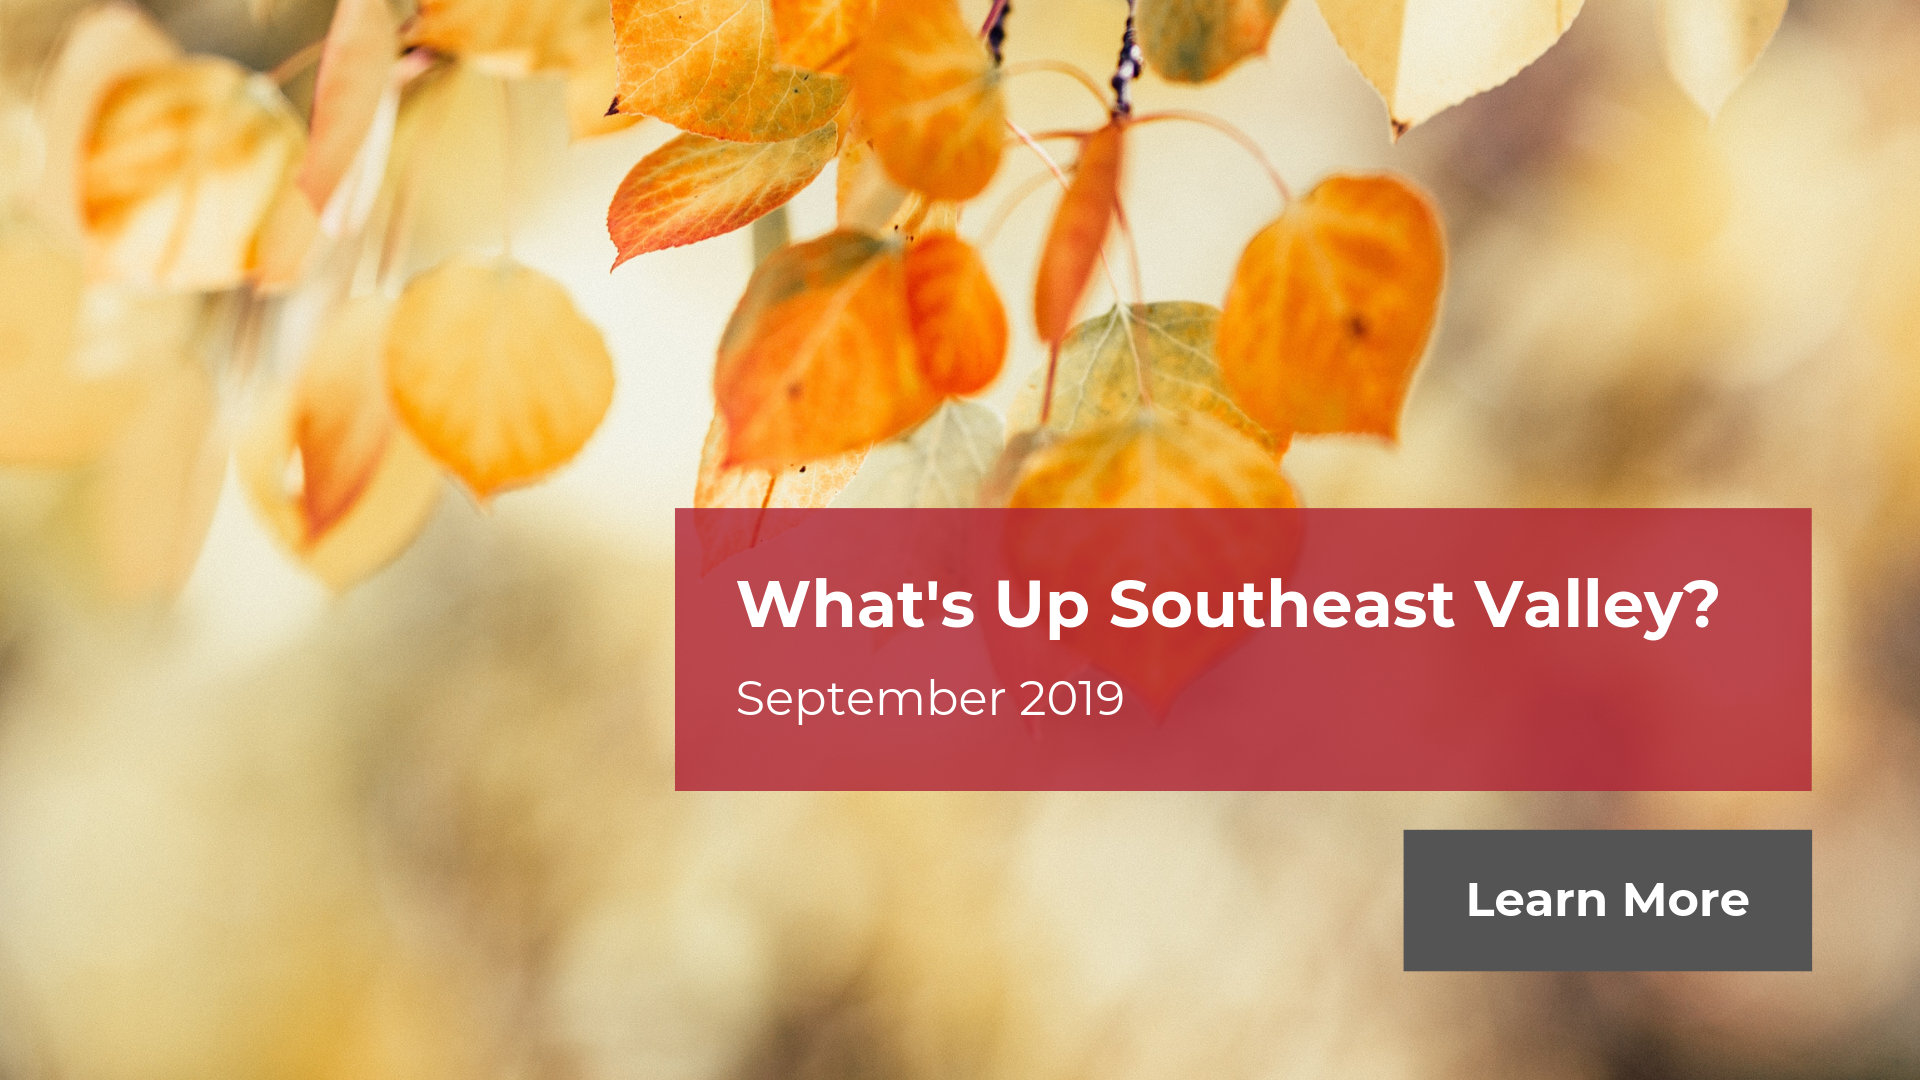 What's Up Southeast Valley - September 2019